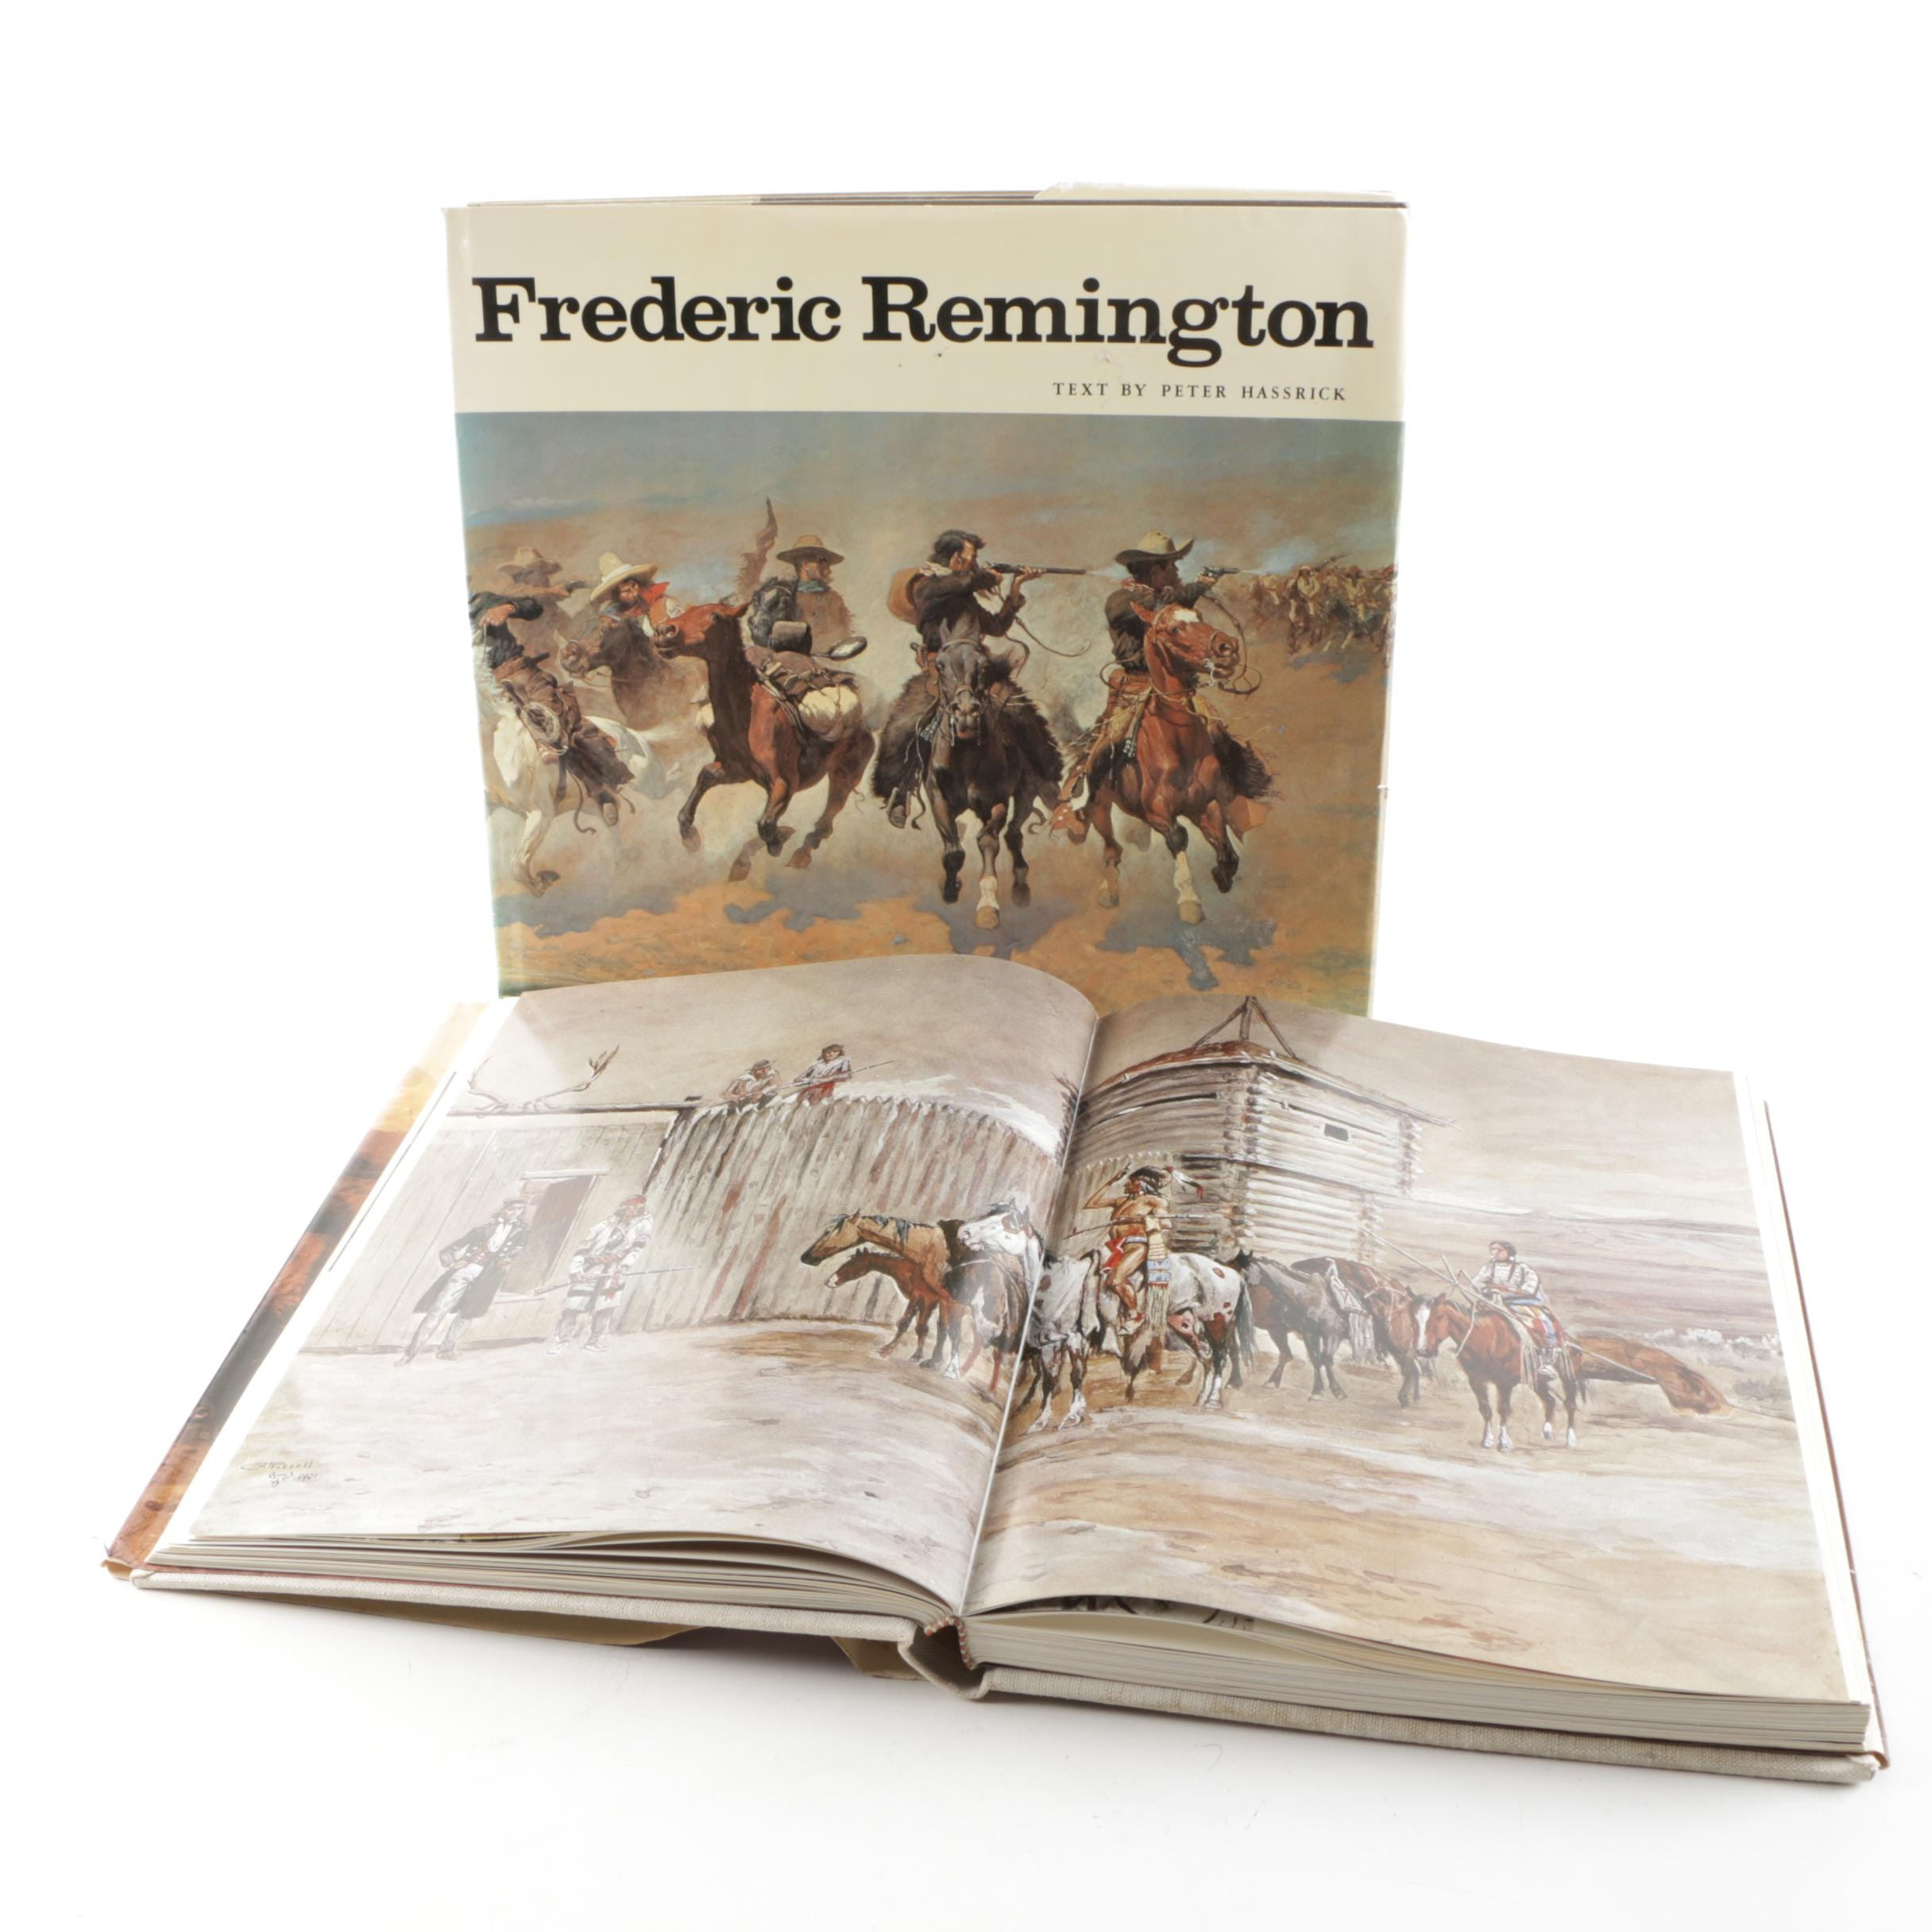 """""""The Art of the Old West"""" and """"Frederic Remington"""" Art Books"""